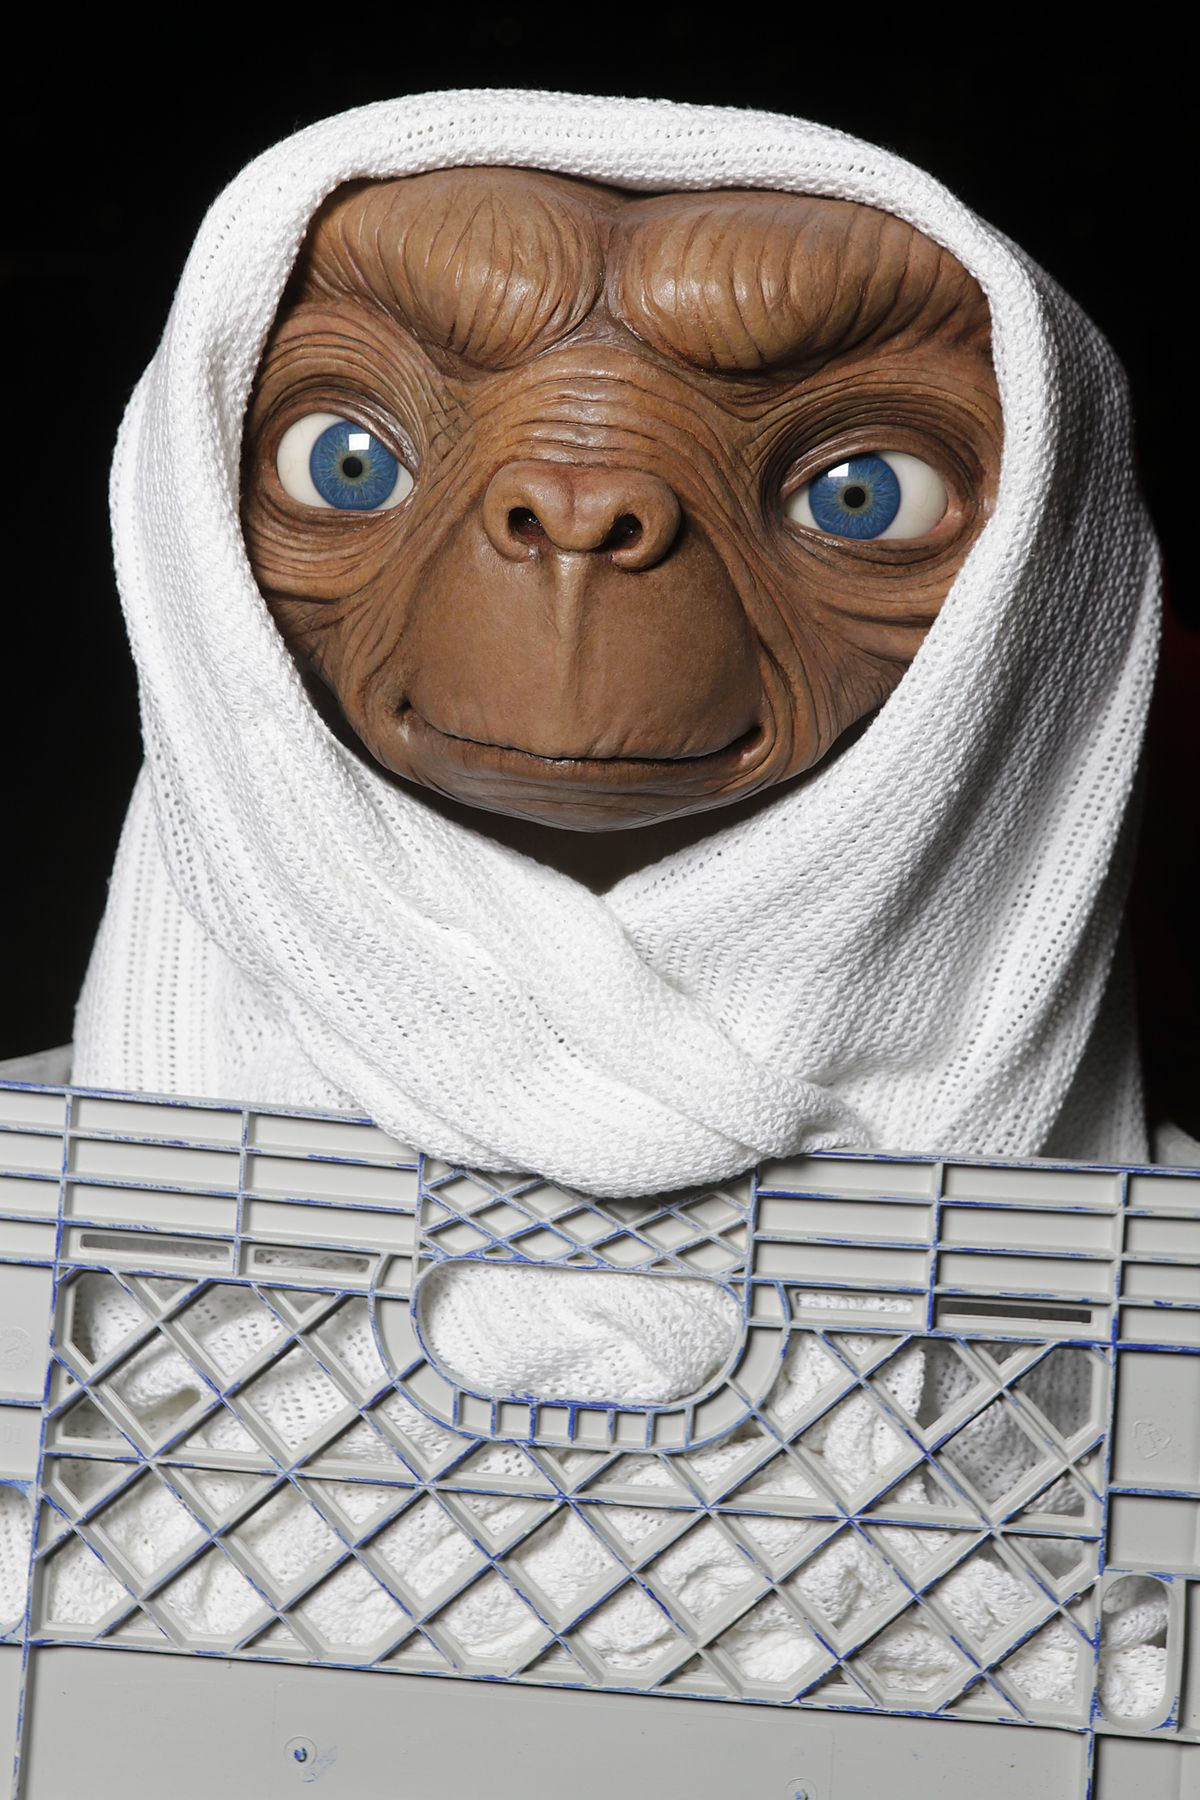 Studio Artist Rides E.T. Figure To Its New Home In The Film Experience At Madame Tussauds New York For The Anniversary of Universal Studios/Amblin Entertainment's 'E.T. The Extra-Terrestrial'